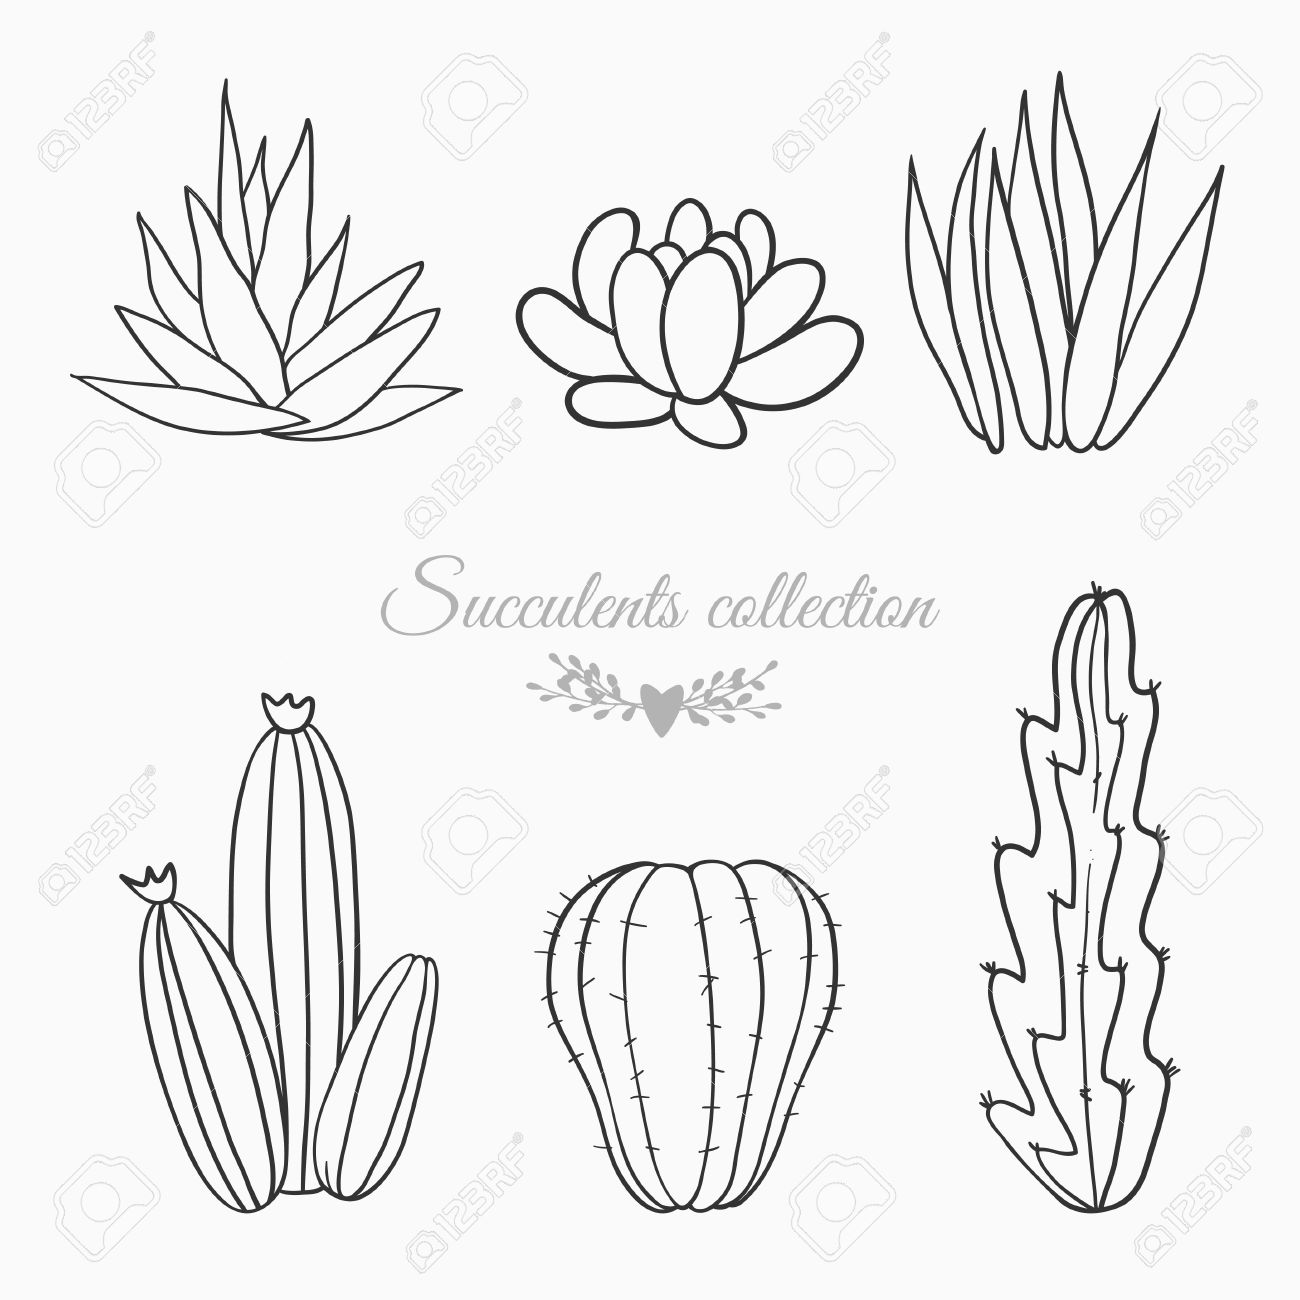 1300x1300 Black And White Sketches Of Cactuses, Succulents And Other Desert